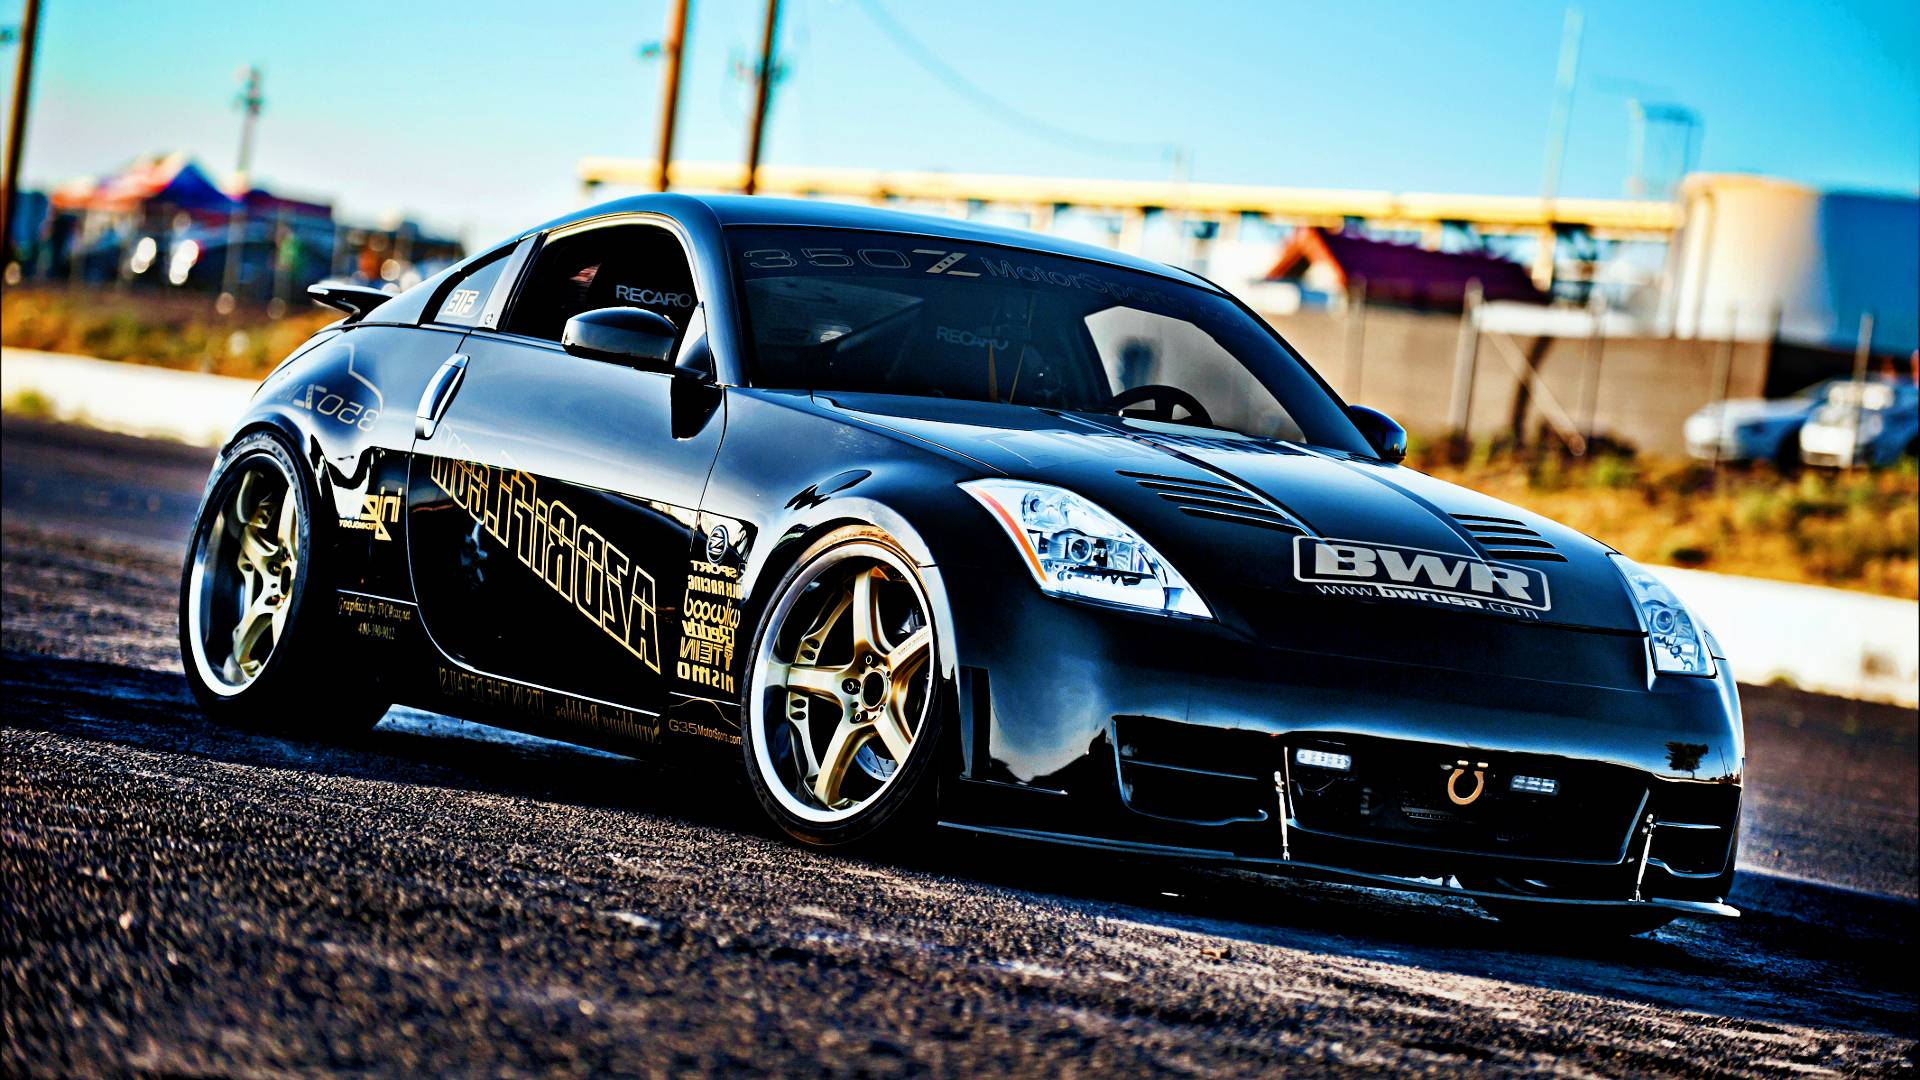 Nissan 350z wallpapers wallpaper cave - Nissan 350z modified ...